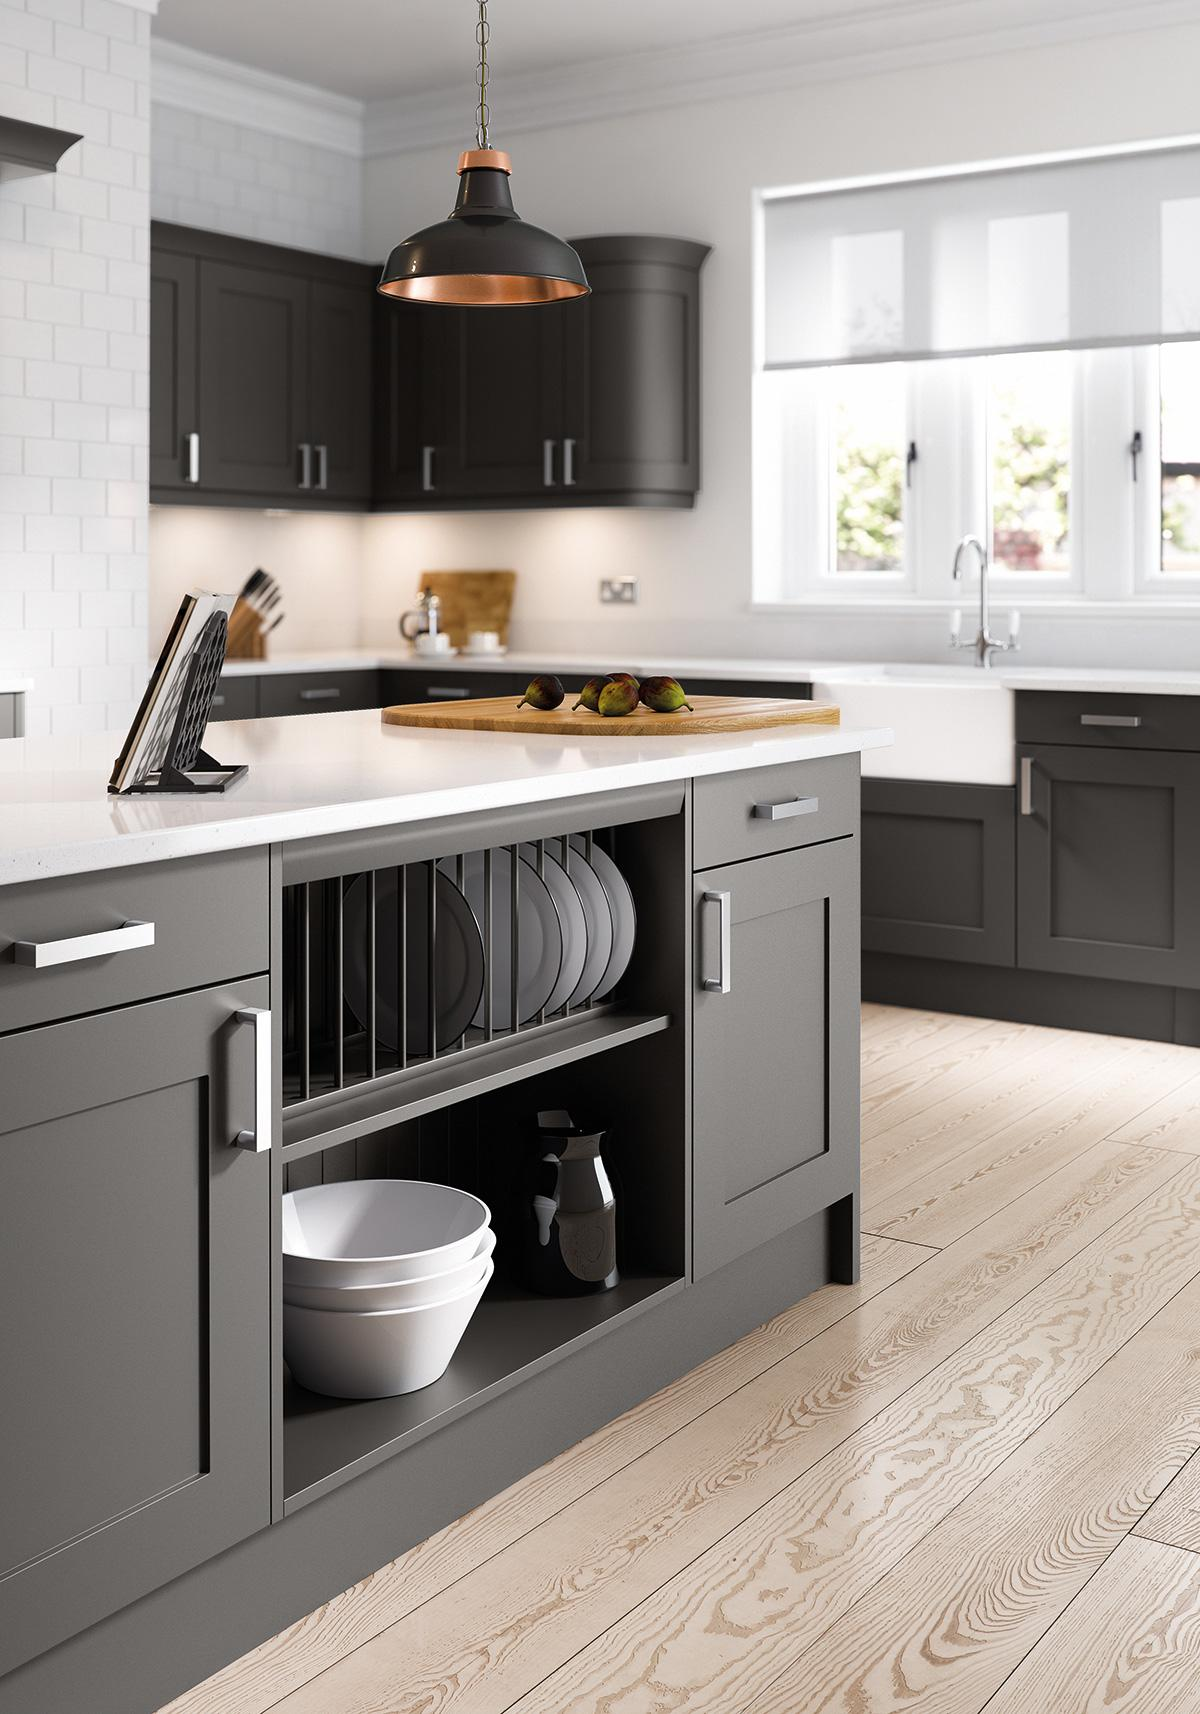 Oxford Shaker Anthracite Shaker Style Kitchen Cabinet Doors